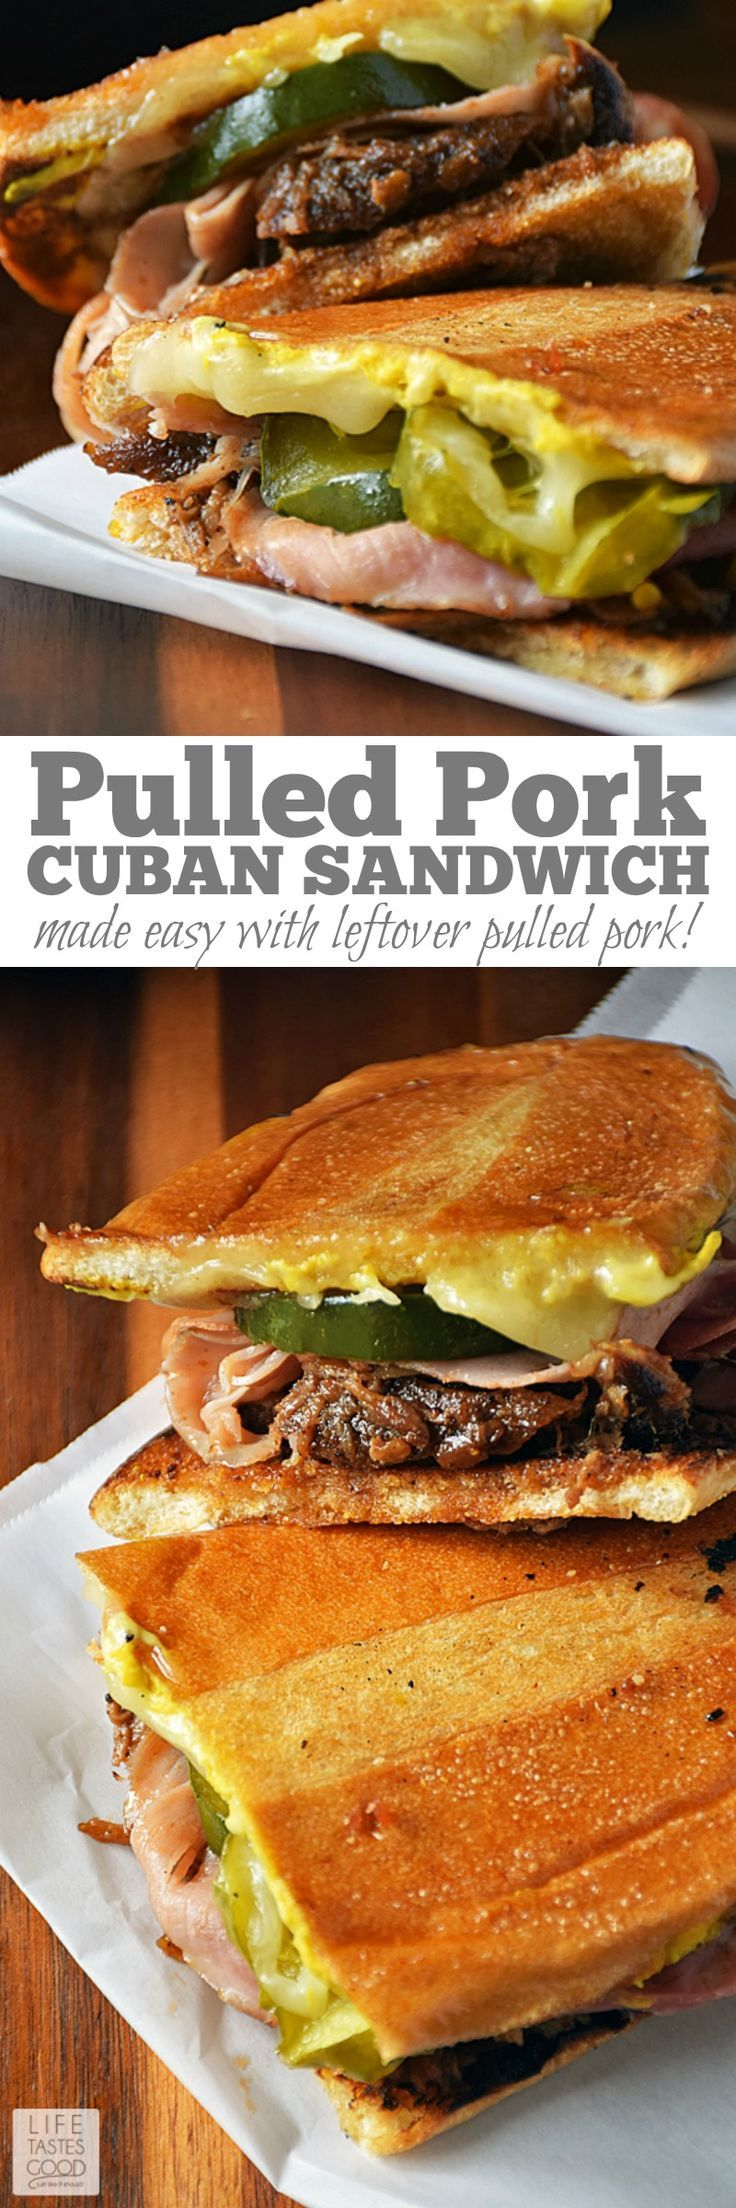 No need to travel to enjoy a Cuban sandwich. Make this Pulled Pork Cuban Sandwich | by Life Tastes Good at home using leftover pulled pork, fresh homemade pickles, your favorite ham and cheese, and soft, fresh baked bread from the bakery. It's easy and full of flavor! #LTGrecipes #sandwichrecipes #pulledporkrecipes #cubansandwich